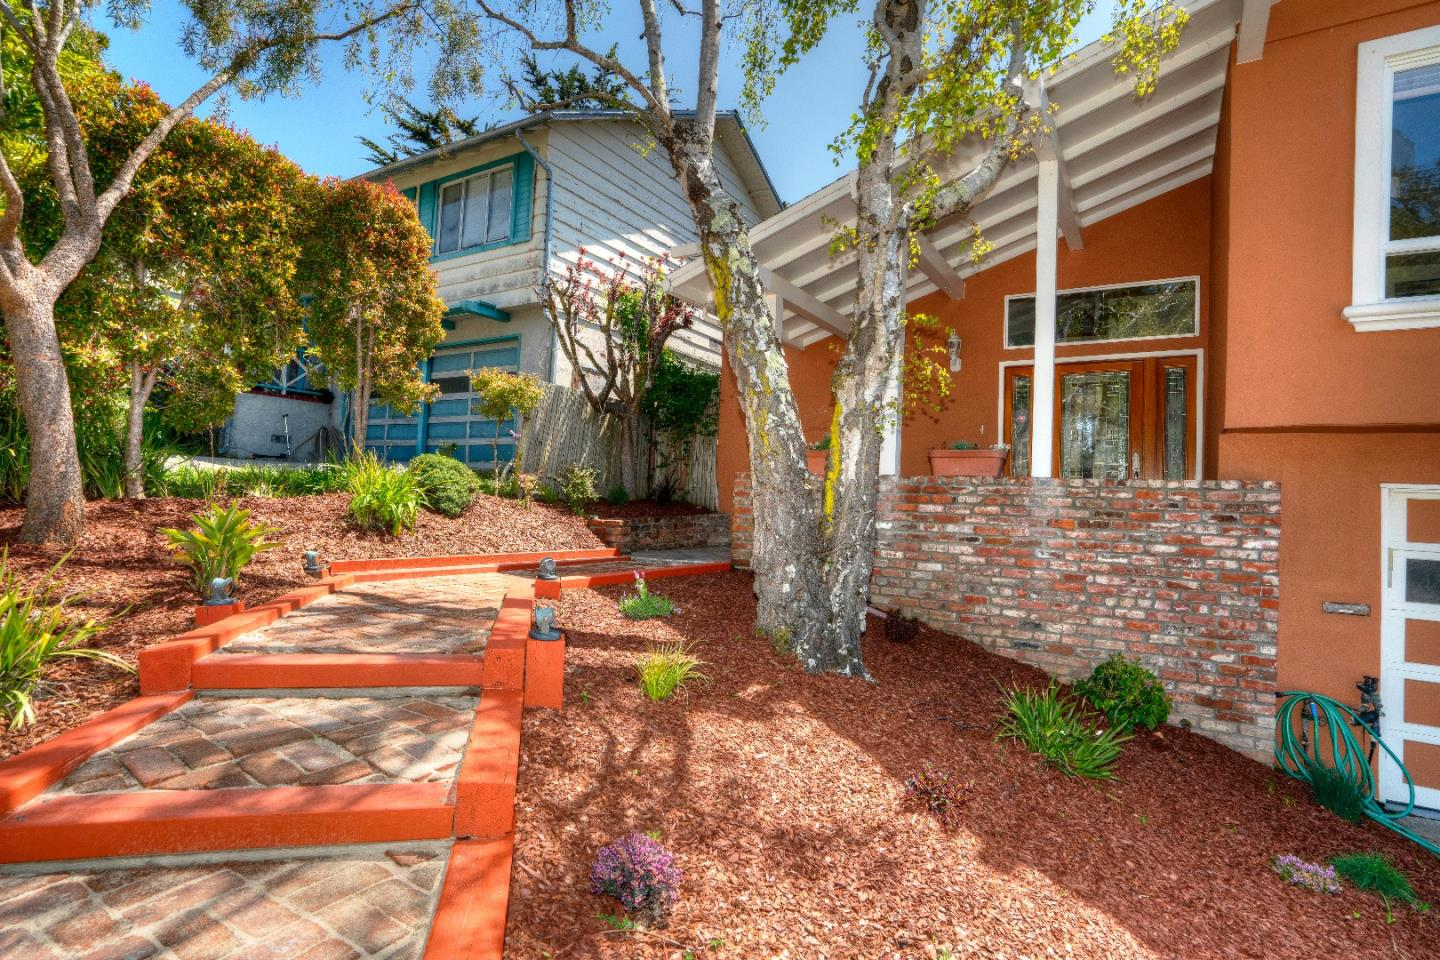 1034 PARK PACIFICA AVE, PACIFICA, CA 94044  Photo